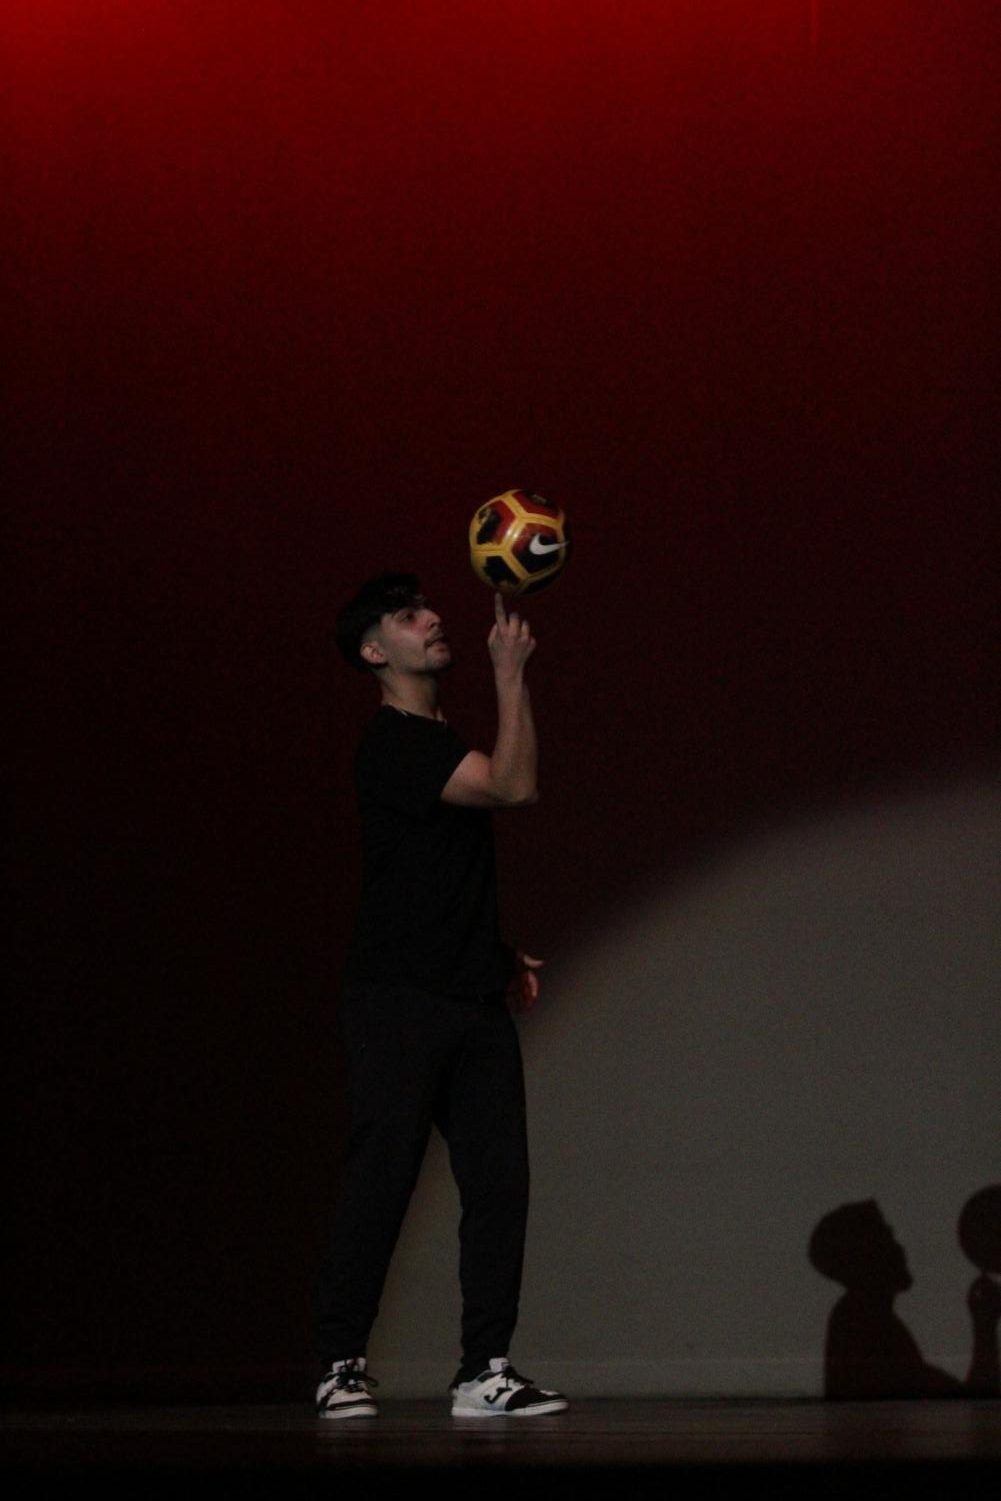 Senior+and+contestant+Isai+Flores+performs+soccer+tricks+during+the+talent+portion+of+the+Mr.+Watkins+Mill+contest.